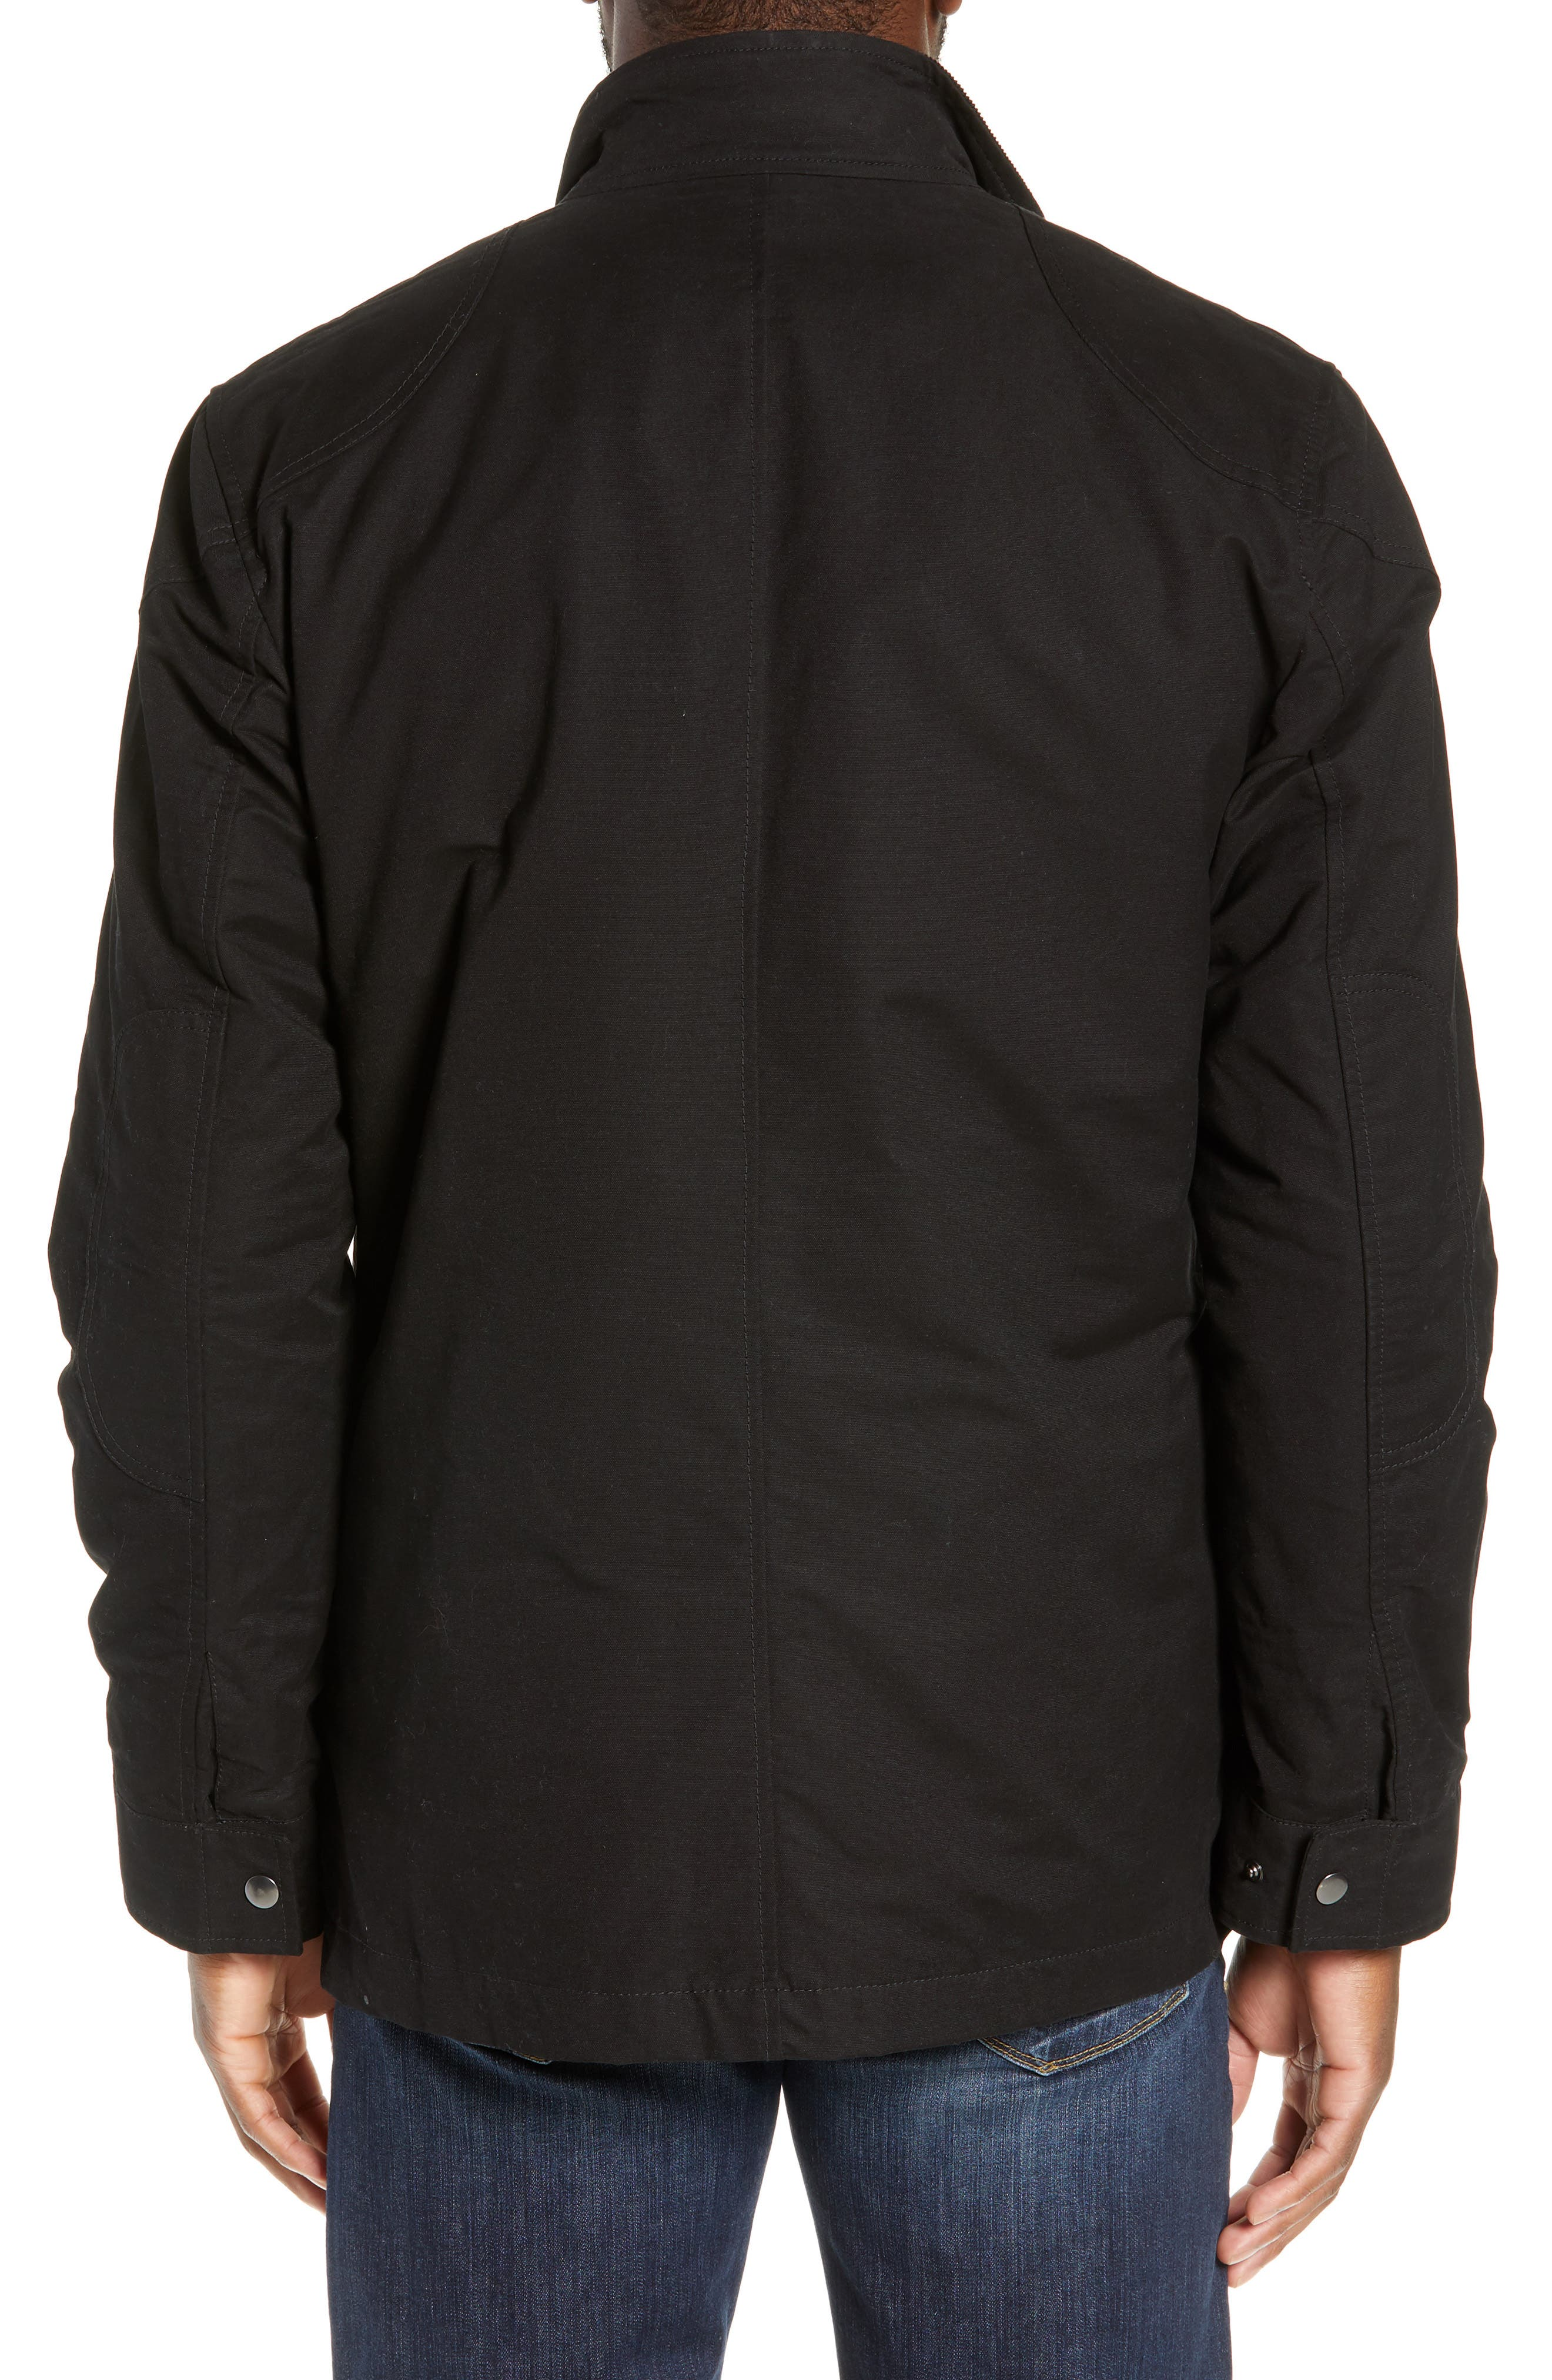 'Harper' Water Resistant 3-in-1 Waxed Canvas Jacket,                             Alternate thumbnail 3, color,                             ONYX